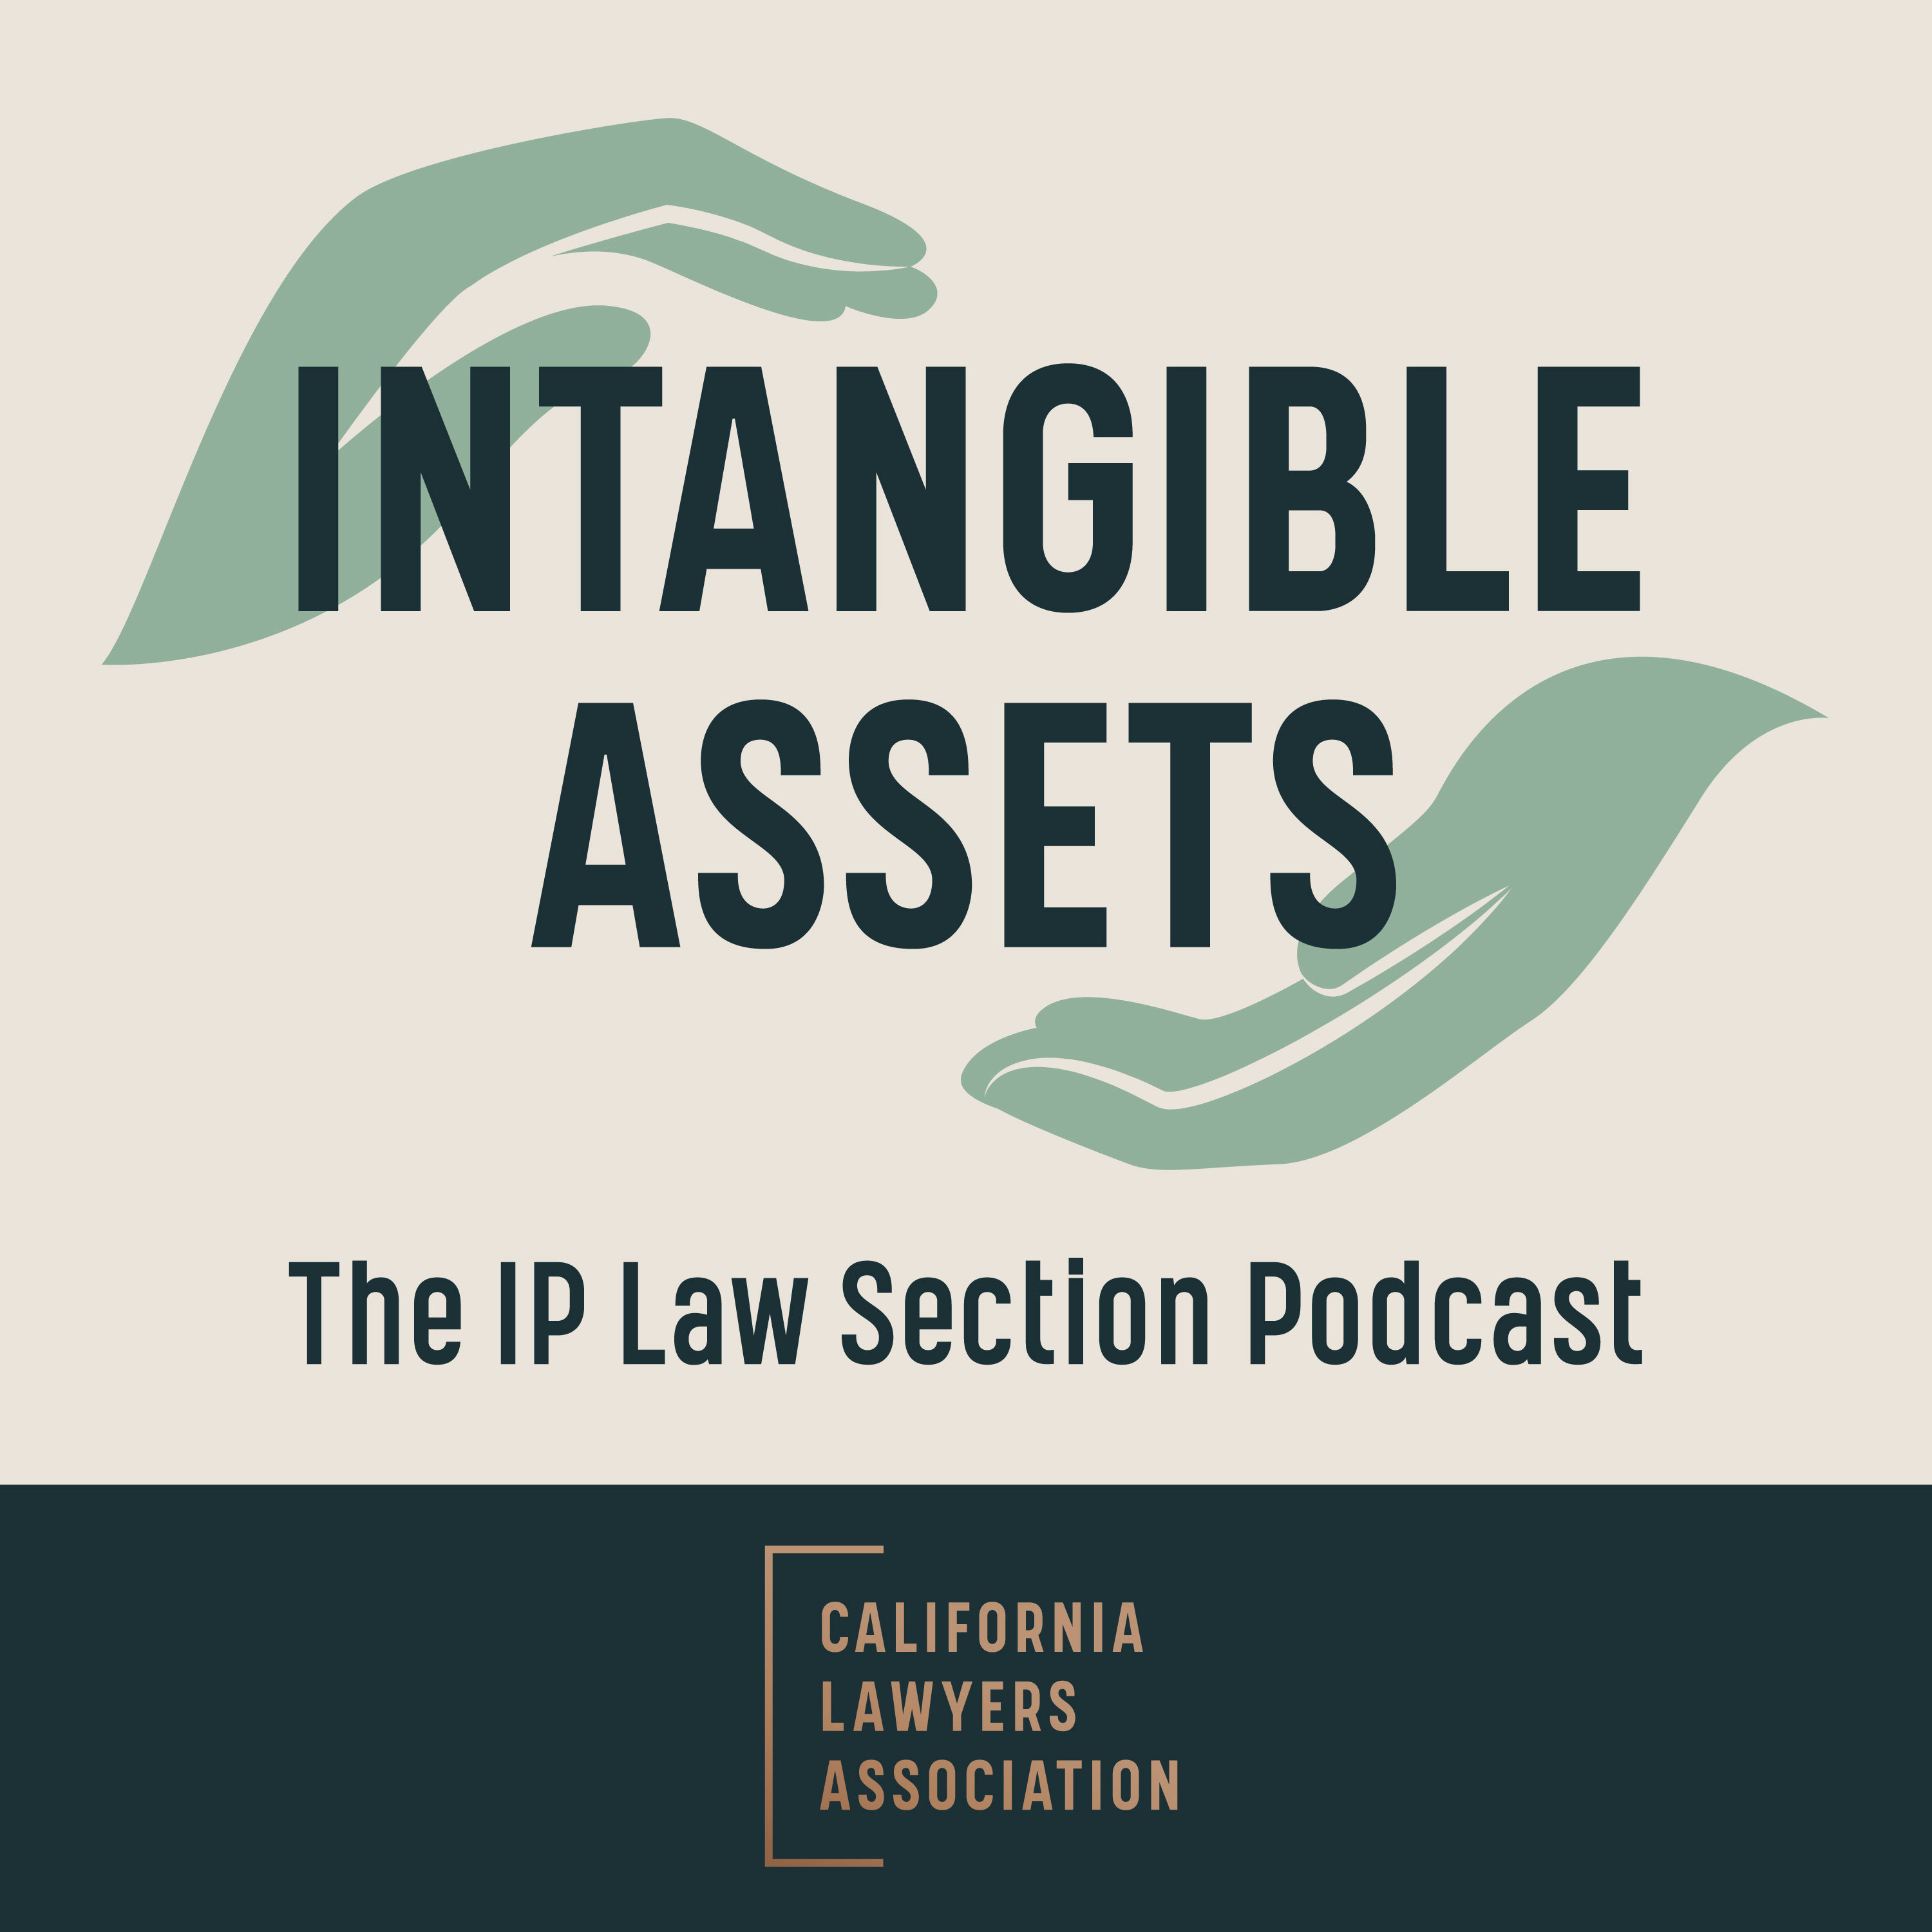 Intangible Assets The IP Law Section Podcast show art